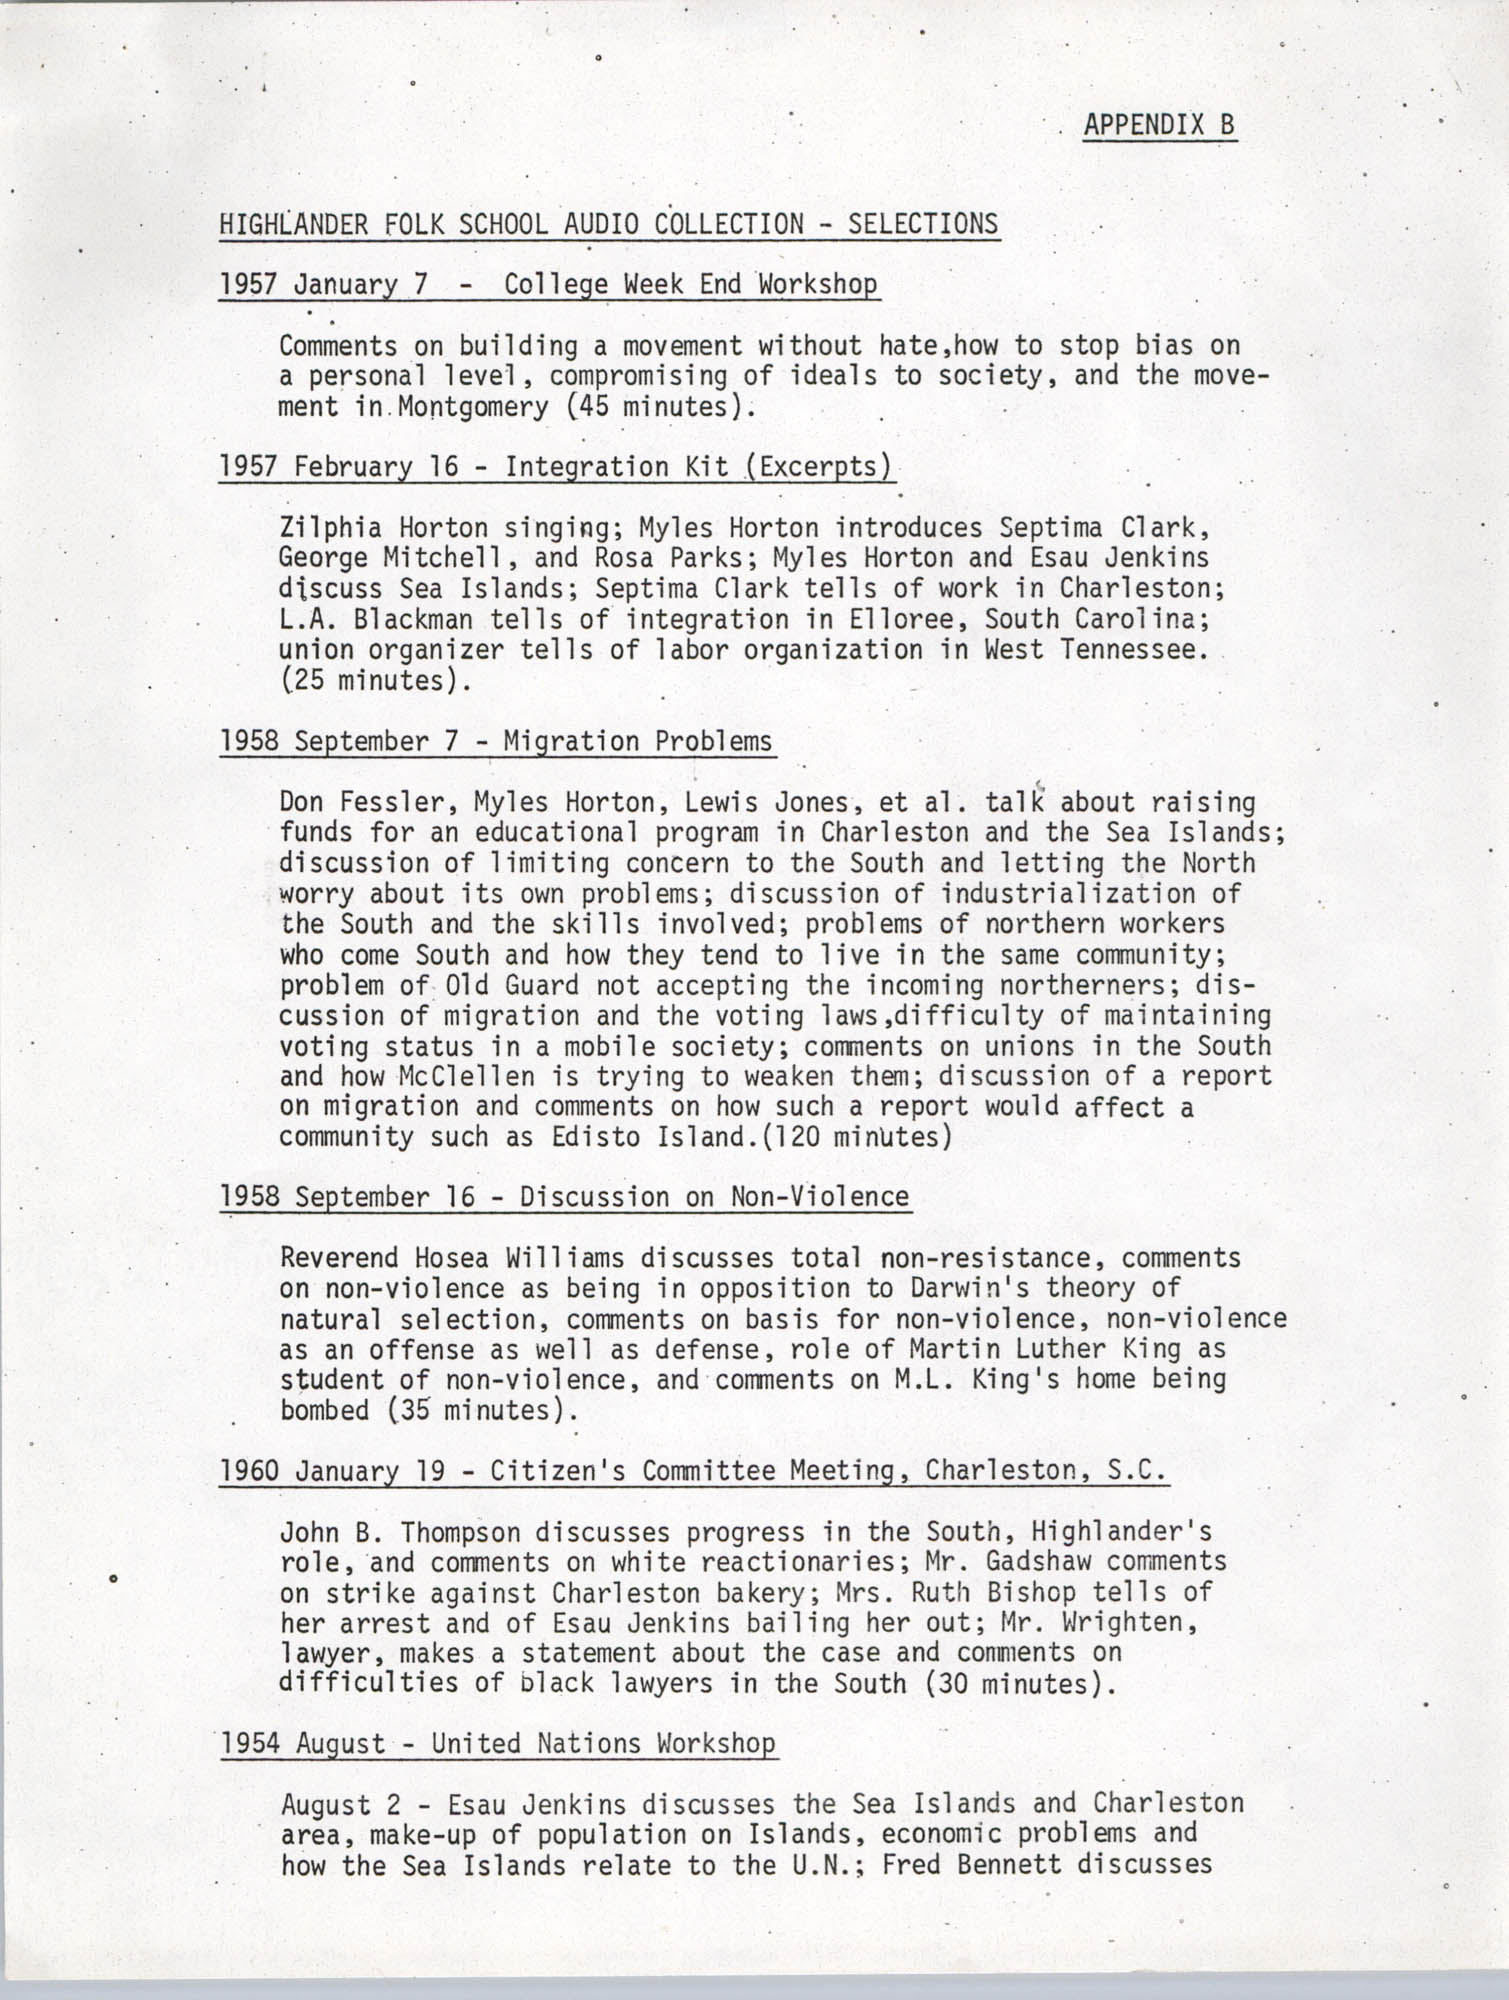 Civil Rights Oral History Project, Appendix B, Page 1